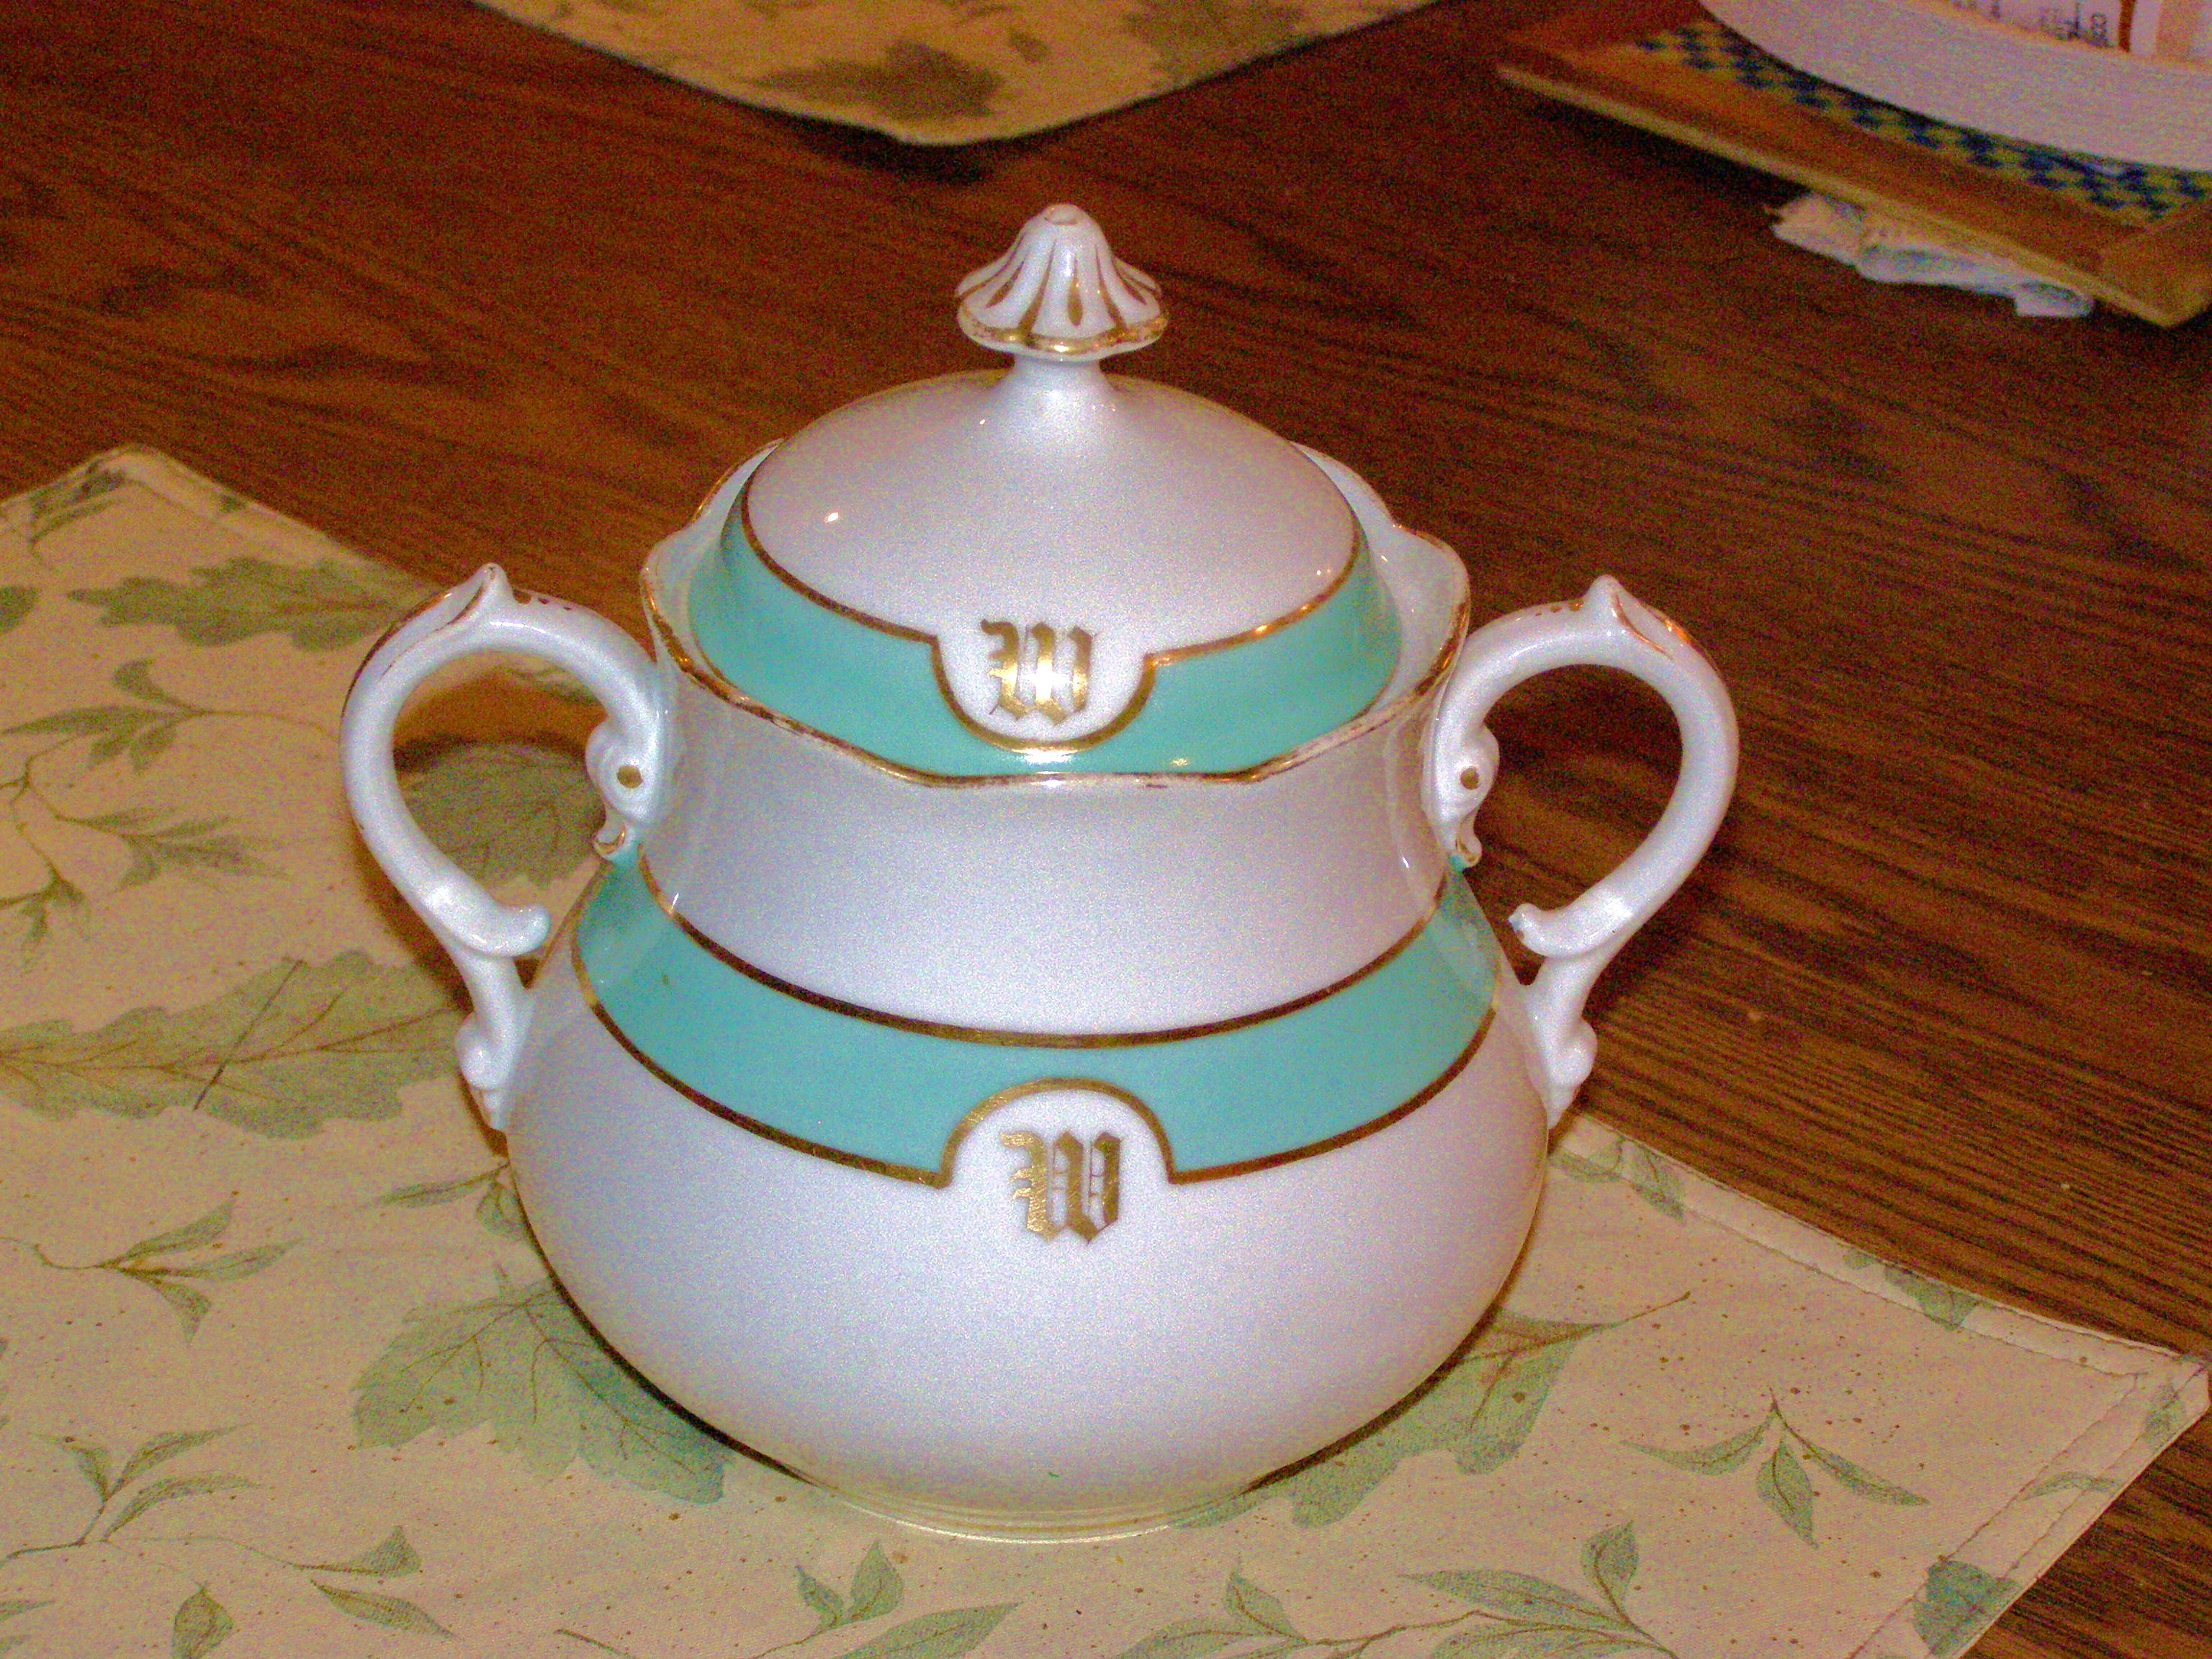 Tea set sugar bowl.JPG